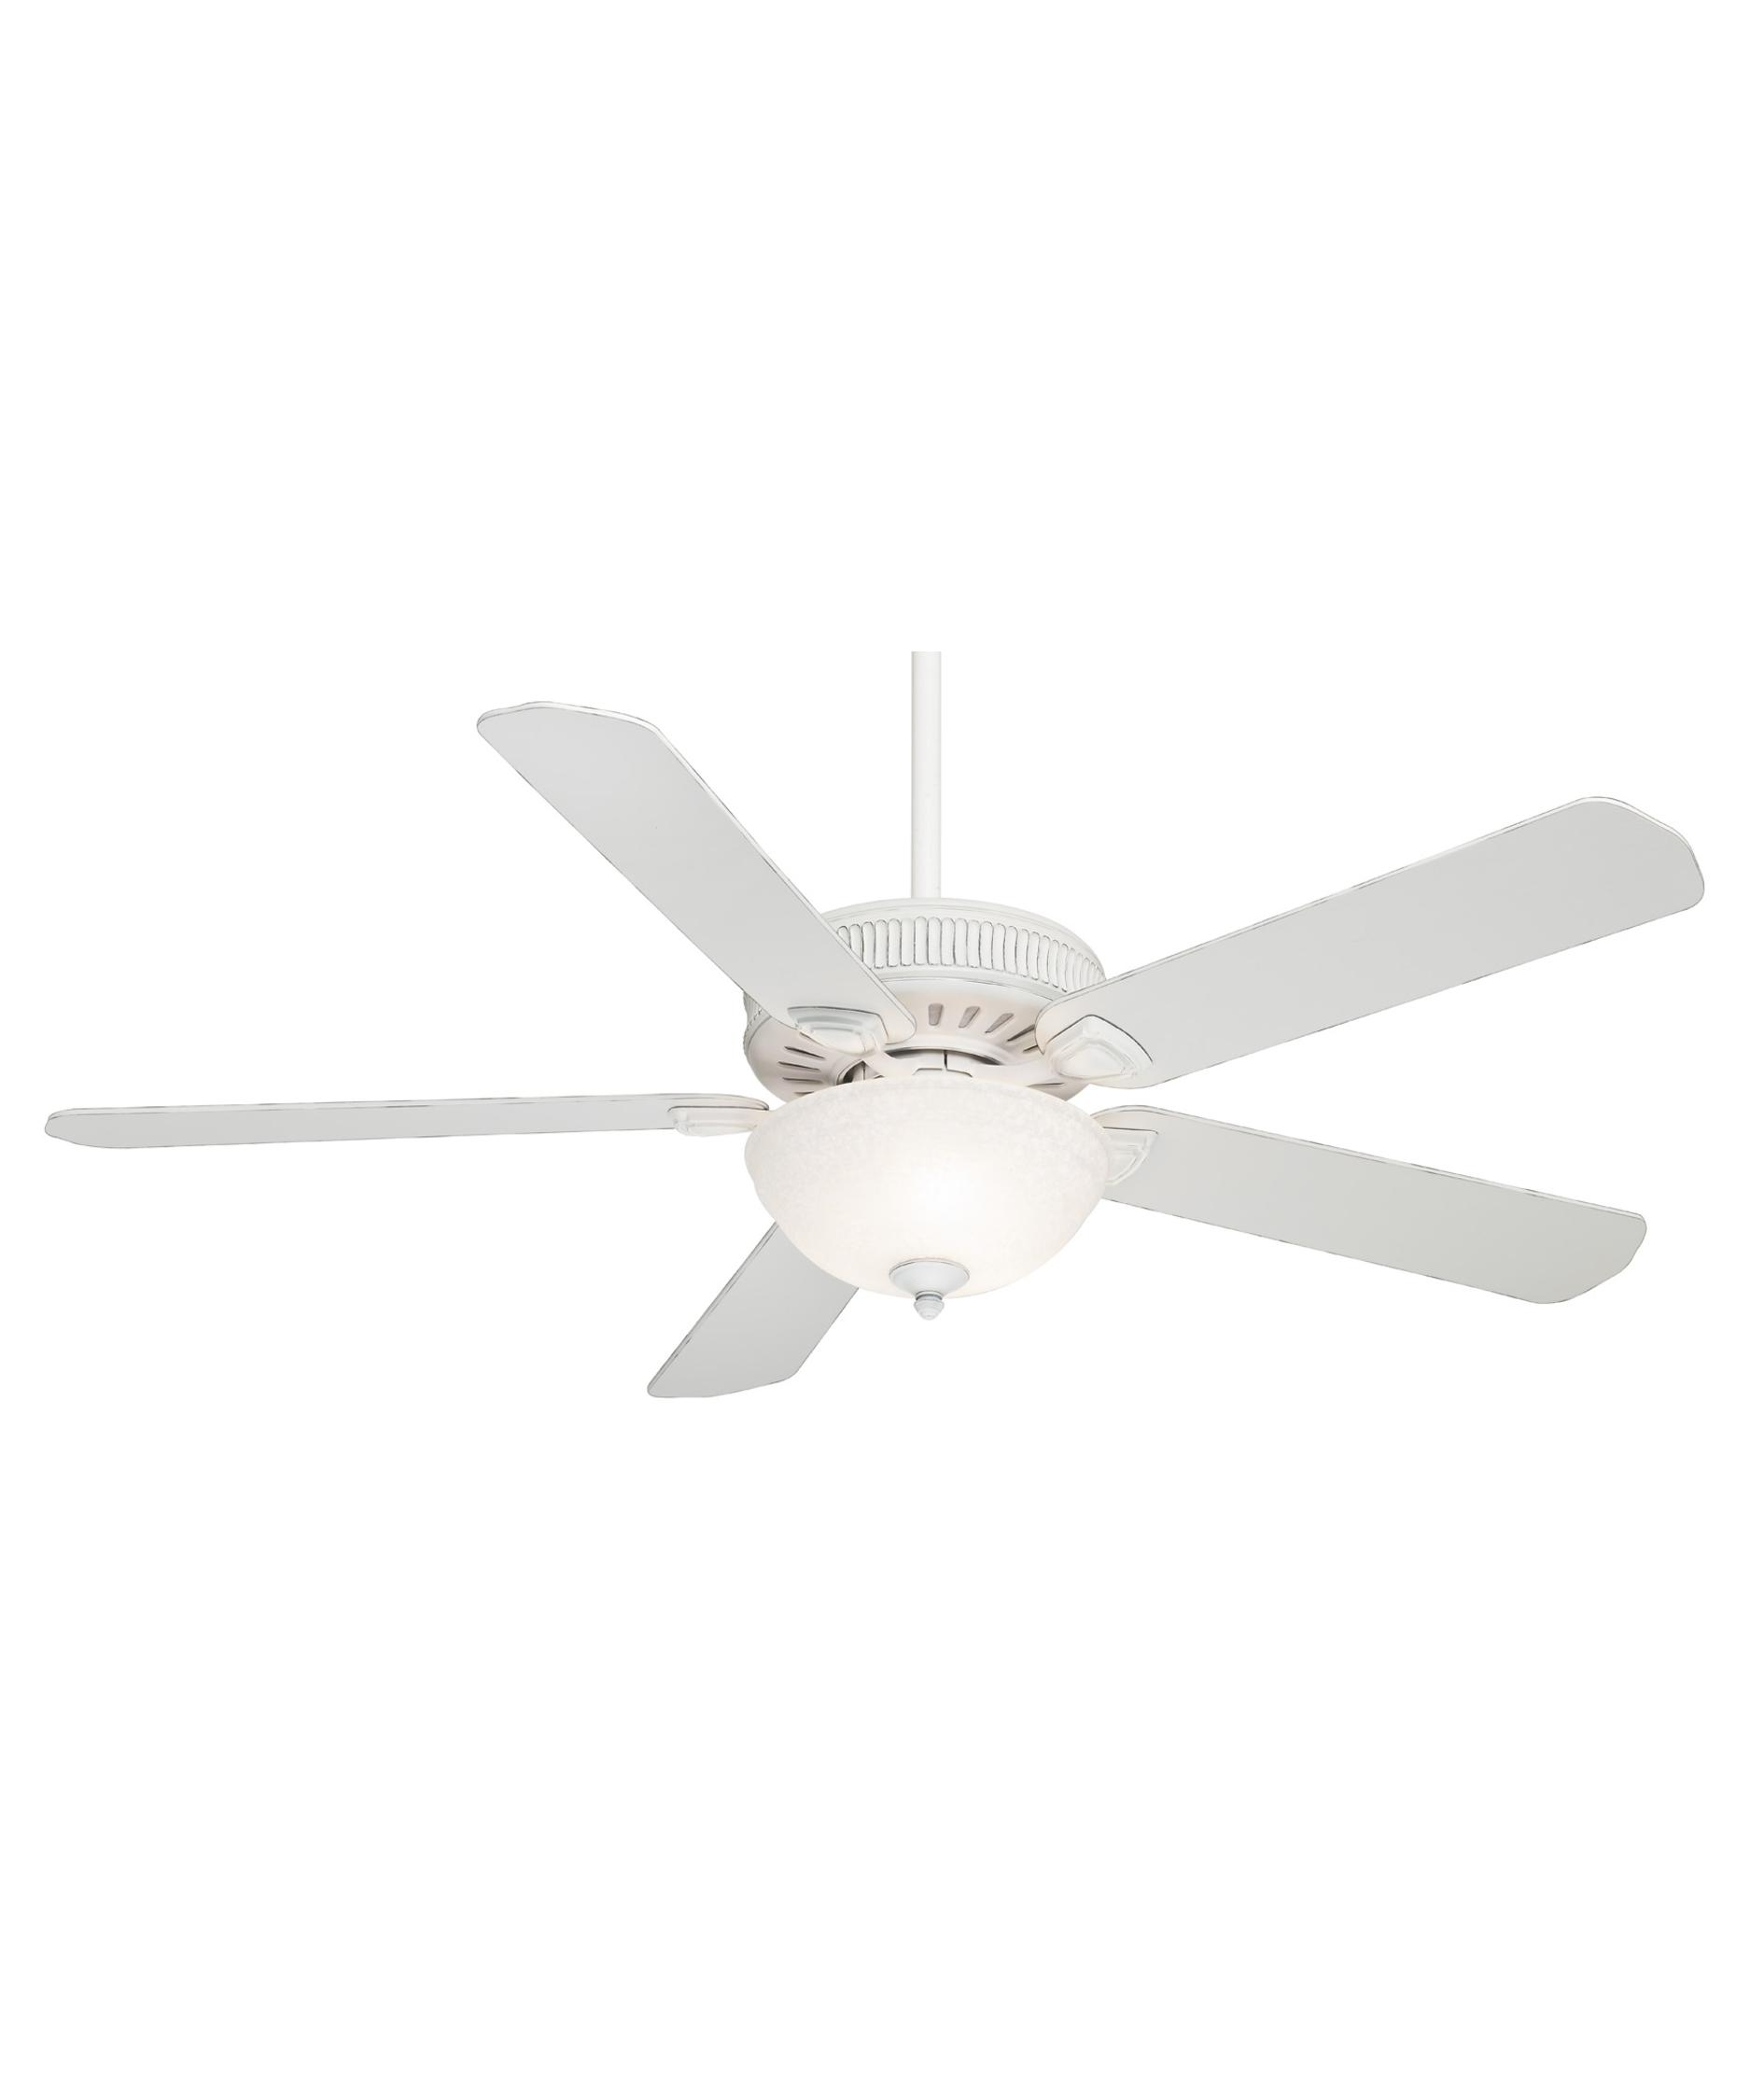 Murray Feiss Ceiling Fan Light Kit: Casablanca 55005 Ainsworth Gallery 60 Inch Ceiling Fan